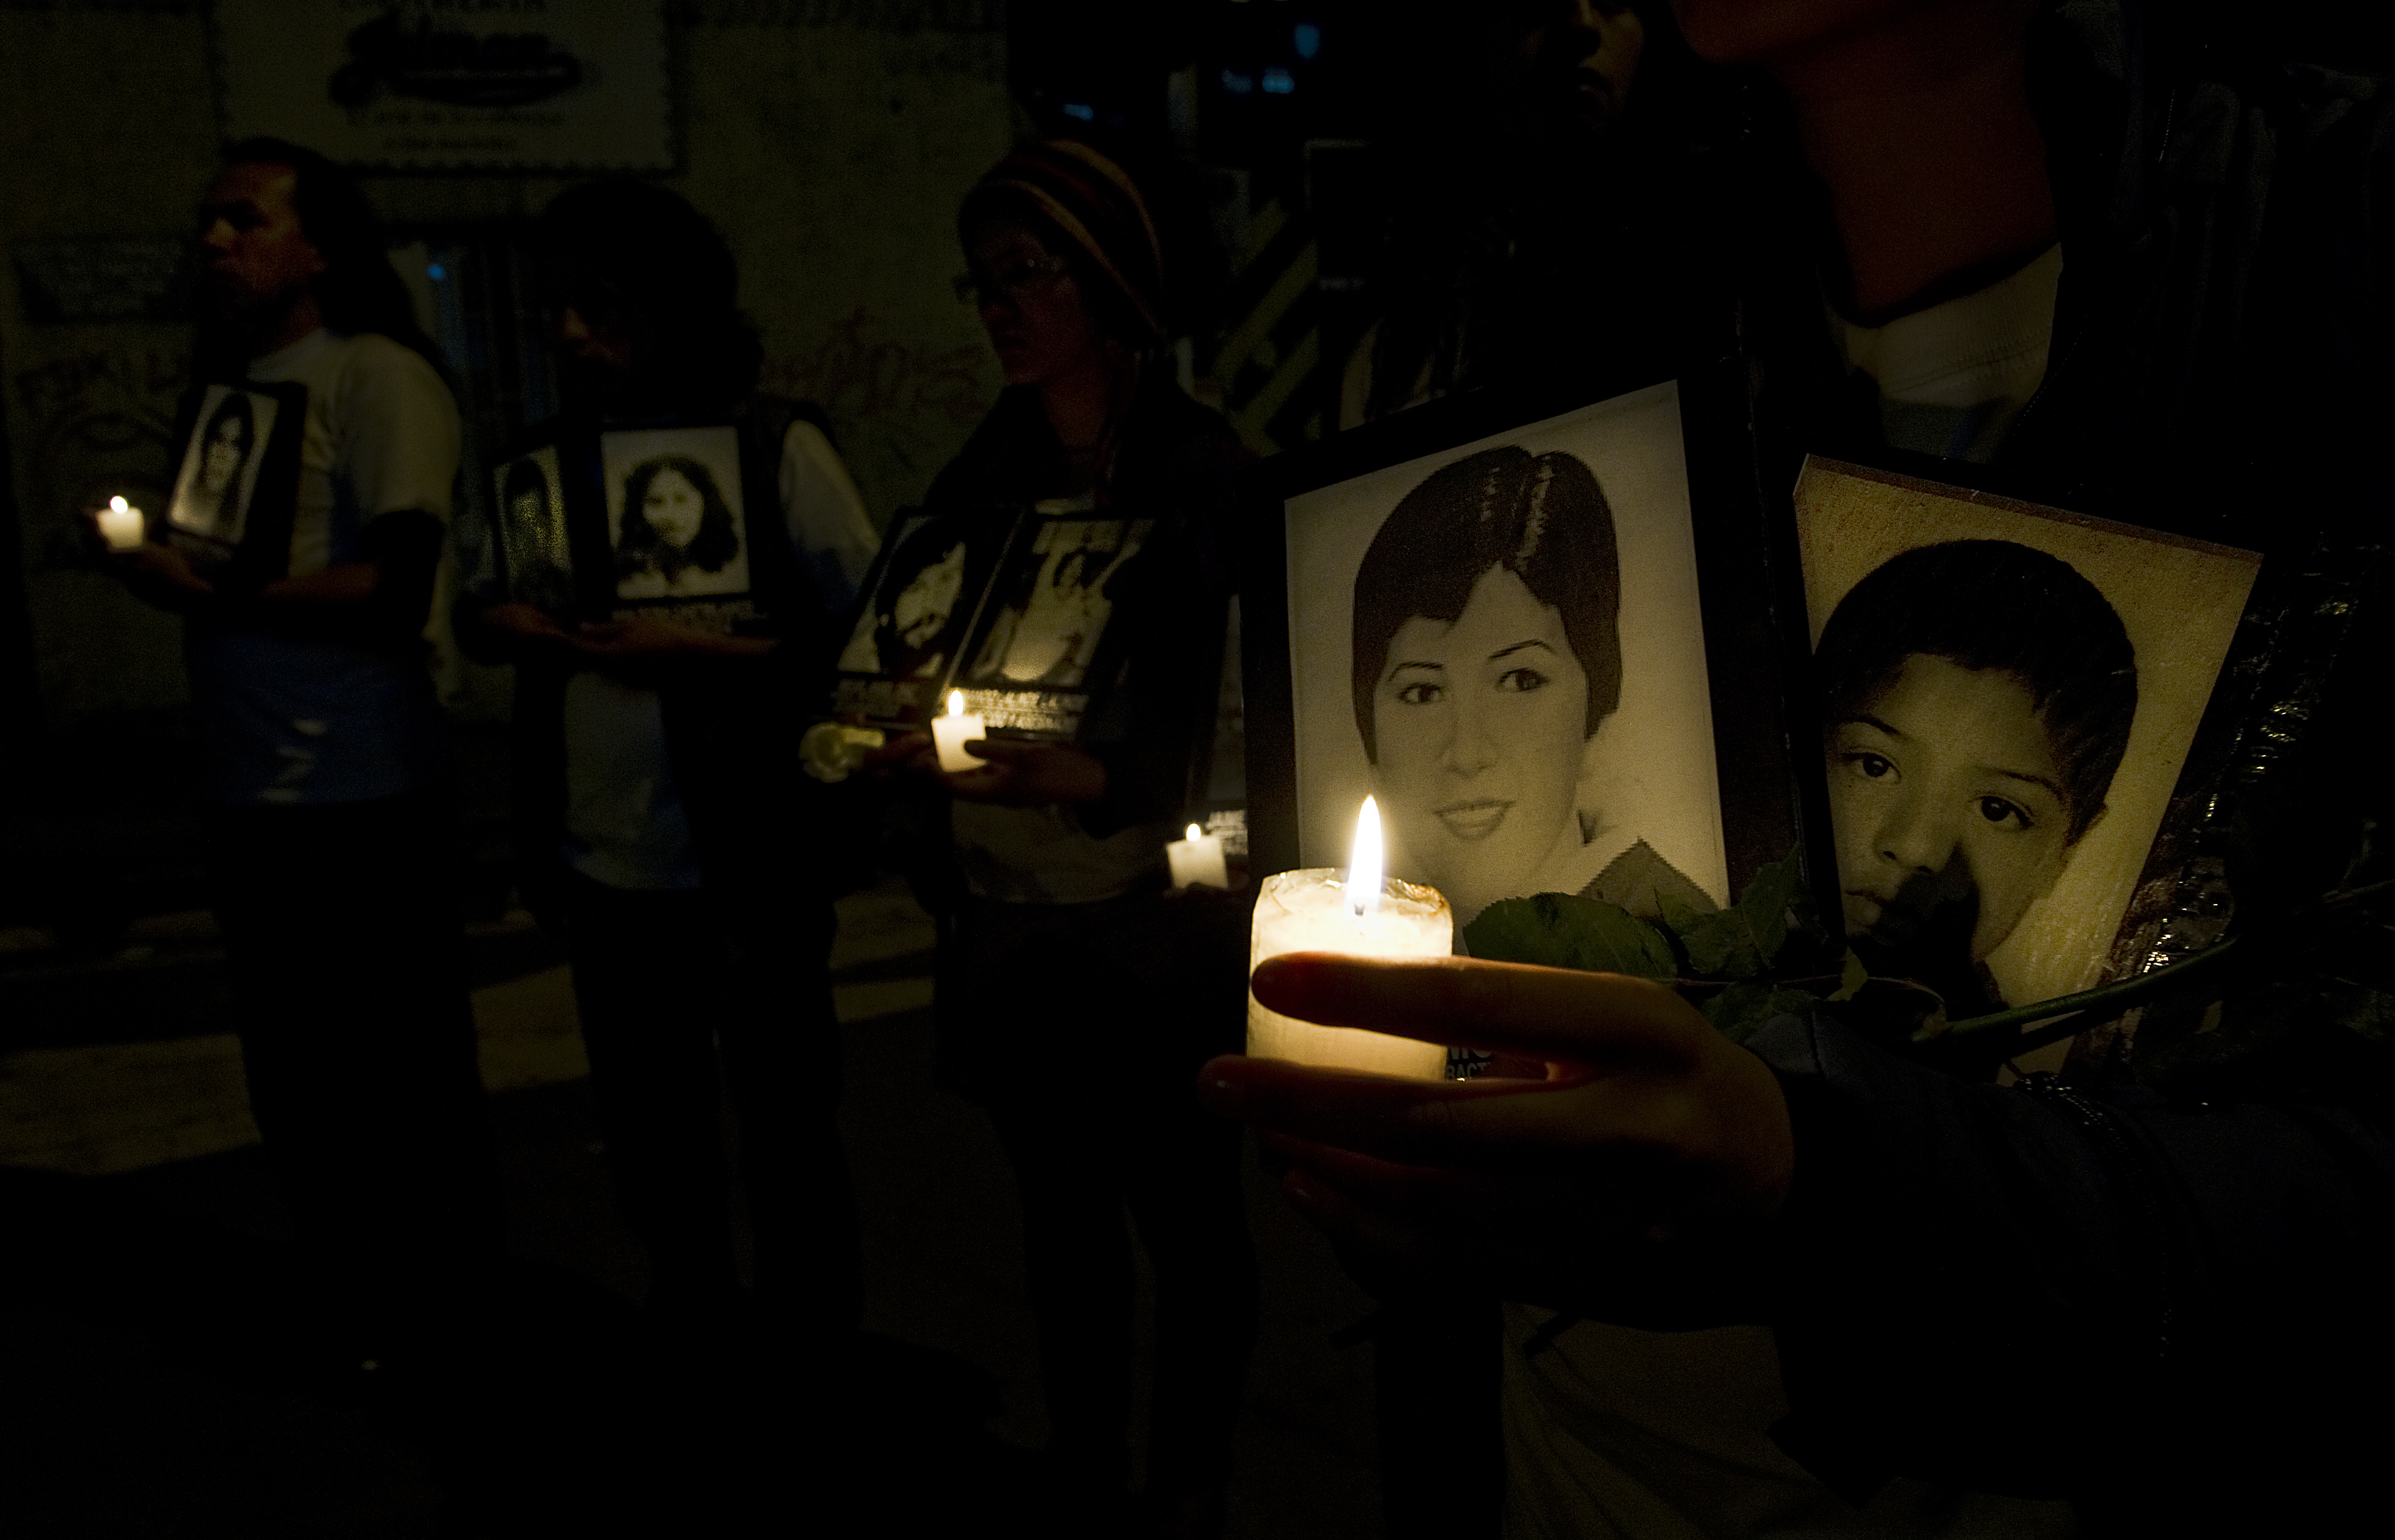 """Relatives of missing persons in Colombia hold photographs and candles during a protest in Bogota on May 26, 2011. The drama of enforced disappearance in Colombia has reached numbers that the representative in Colombia of the United Nations High Commissioner for Human Rights, Christian Salazar, described as """"chilling"""". At least 26,500 cases have been reported to the prosecutor. AFP PHOTO/Luis Acosta (Photo credit should read LUIS ACOSTA/AFP/Getty Images)"""